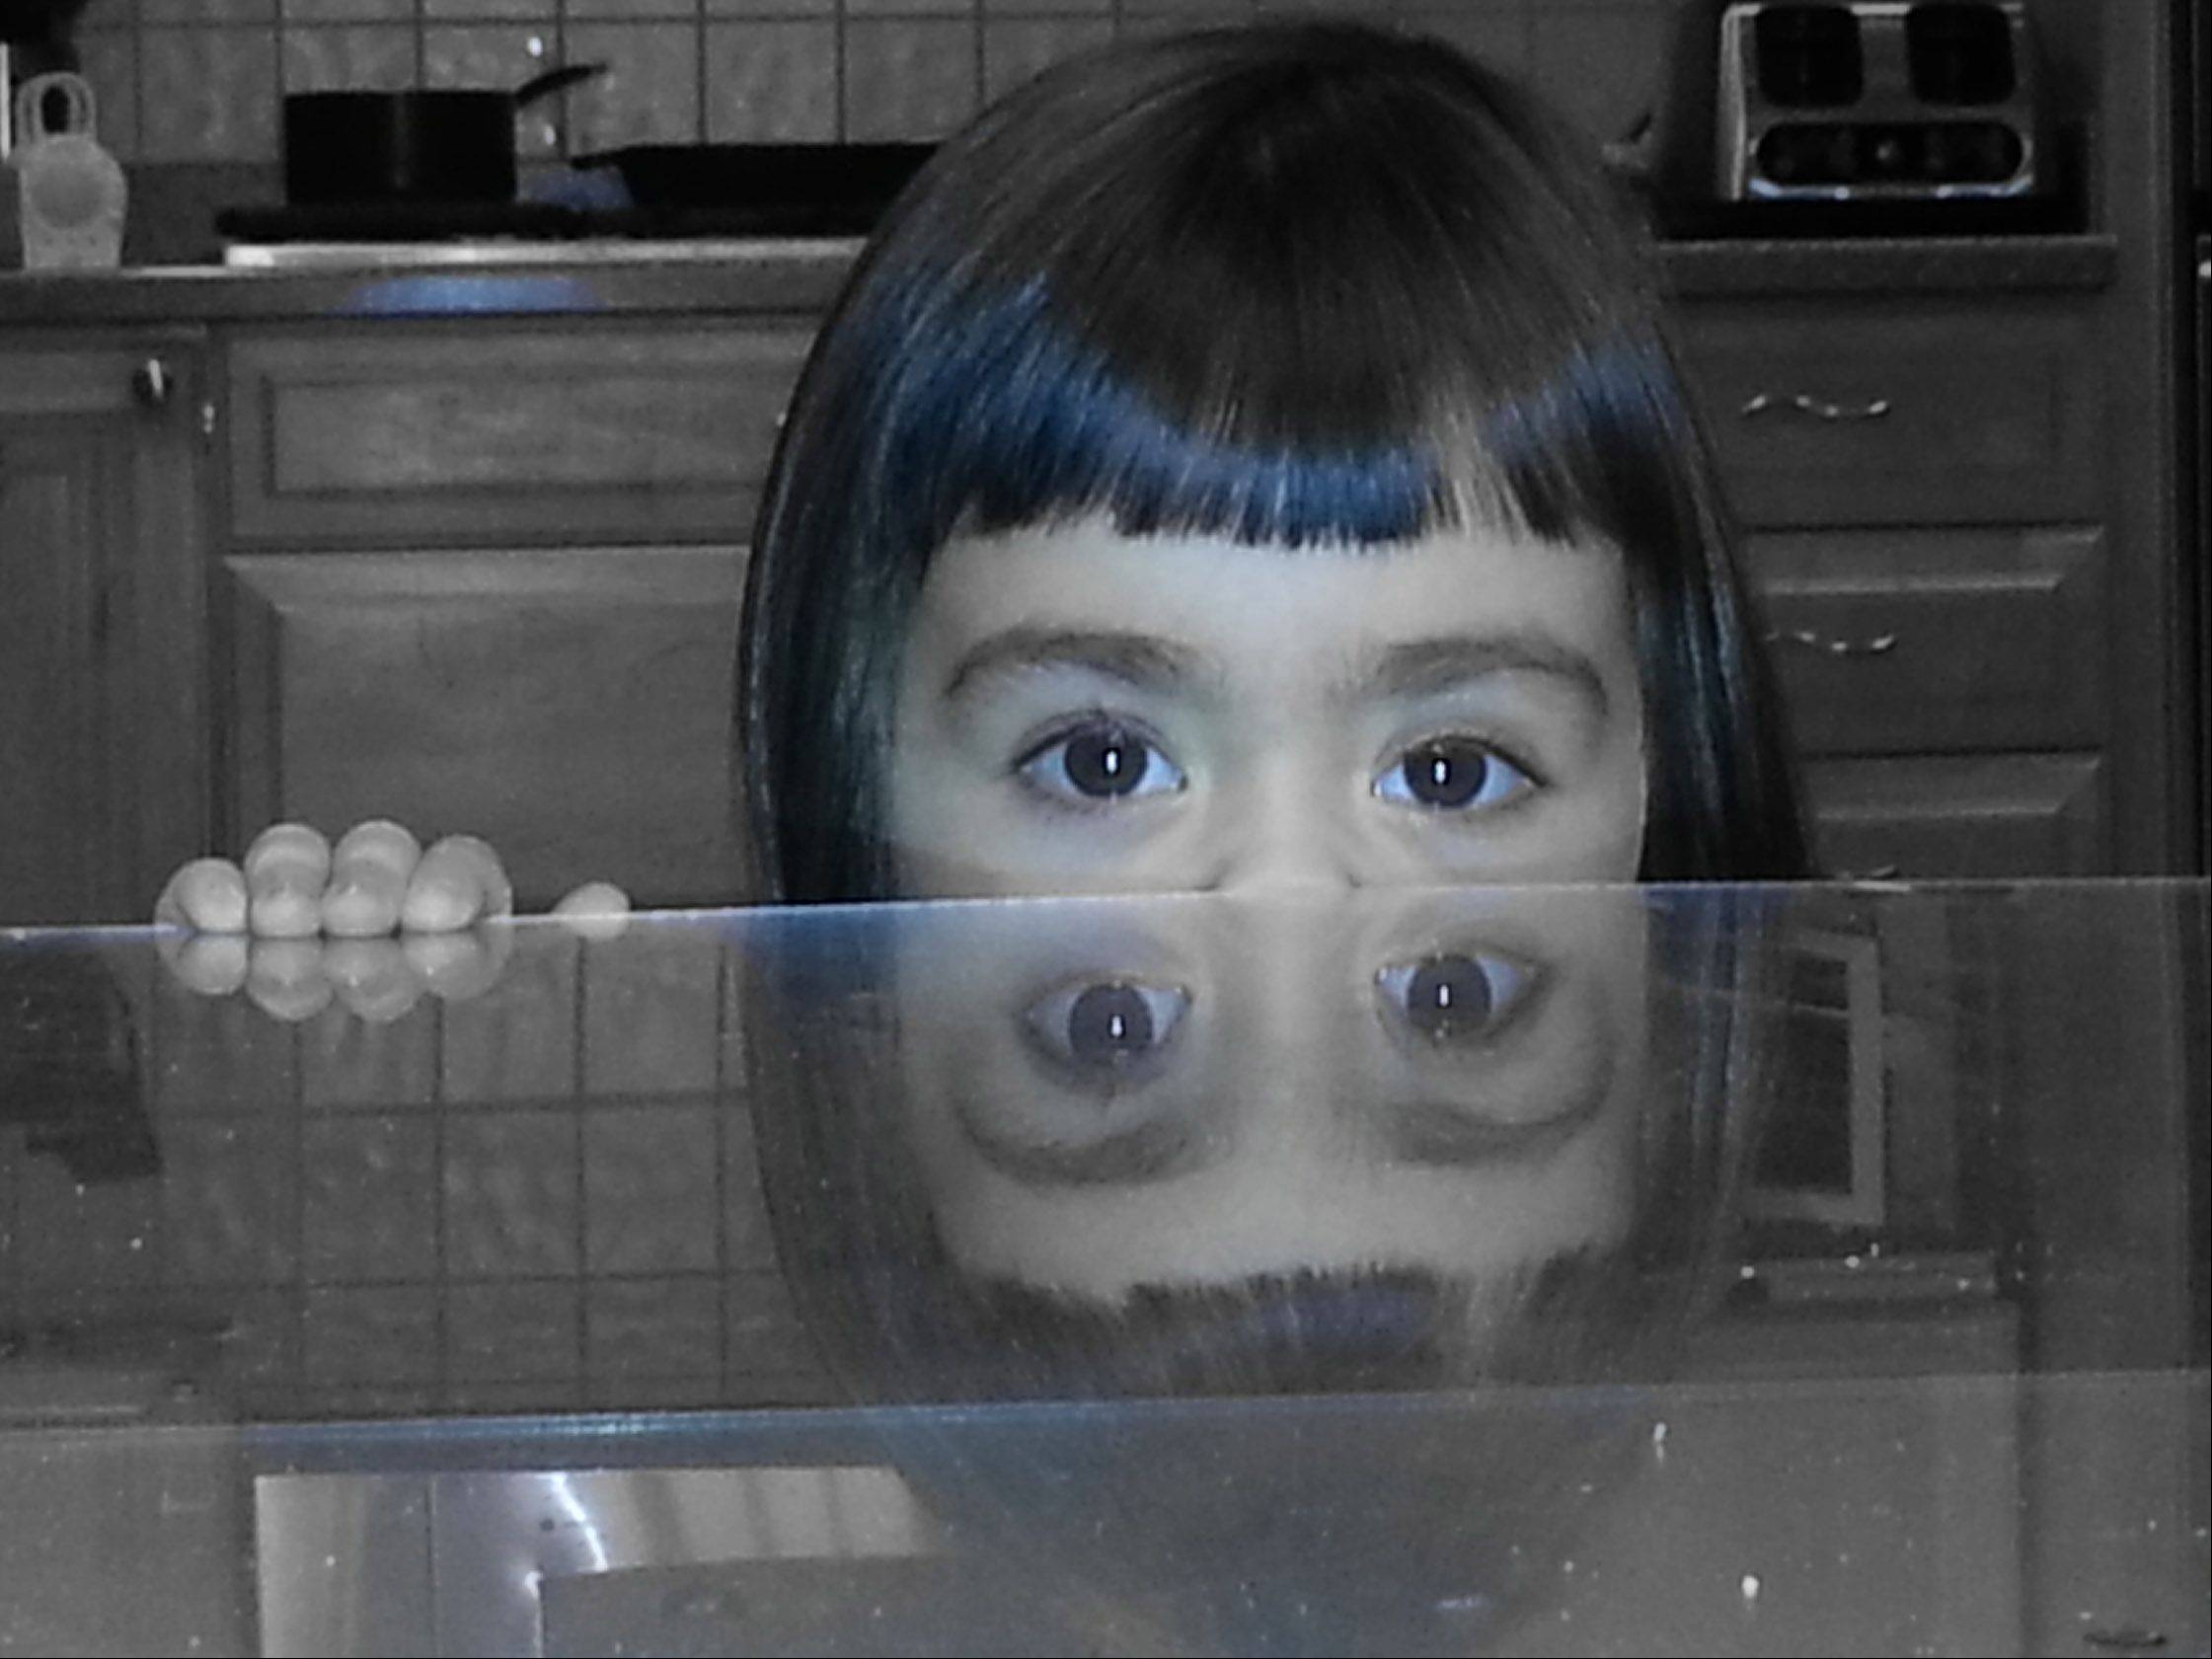 A young girl stares over the kitchen table with a reflective surface waiting to strike at any moment.